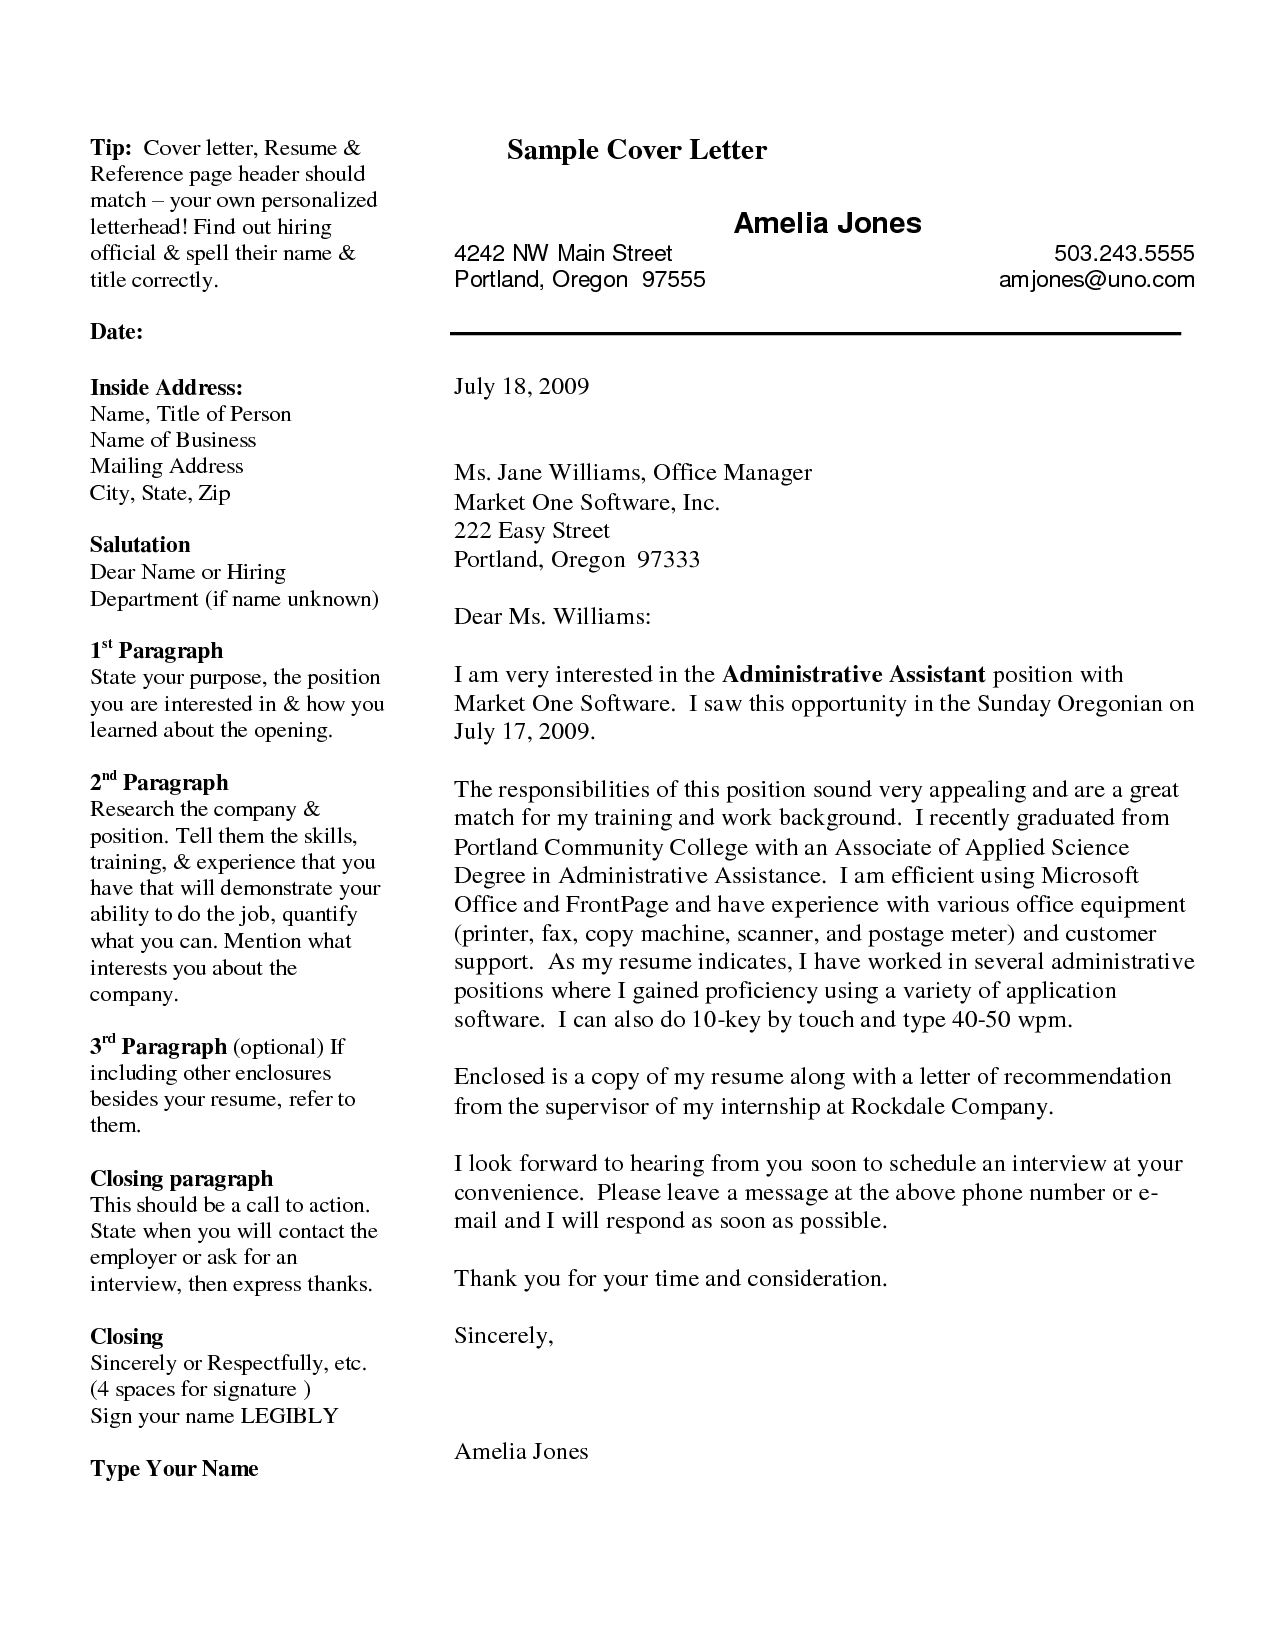 Professional Resume Cover Letter SamplesProfessional Resume Cover Letter  Samples Professional Resume Cover Letter Samples,how  Basic Cover Letter For Resume